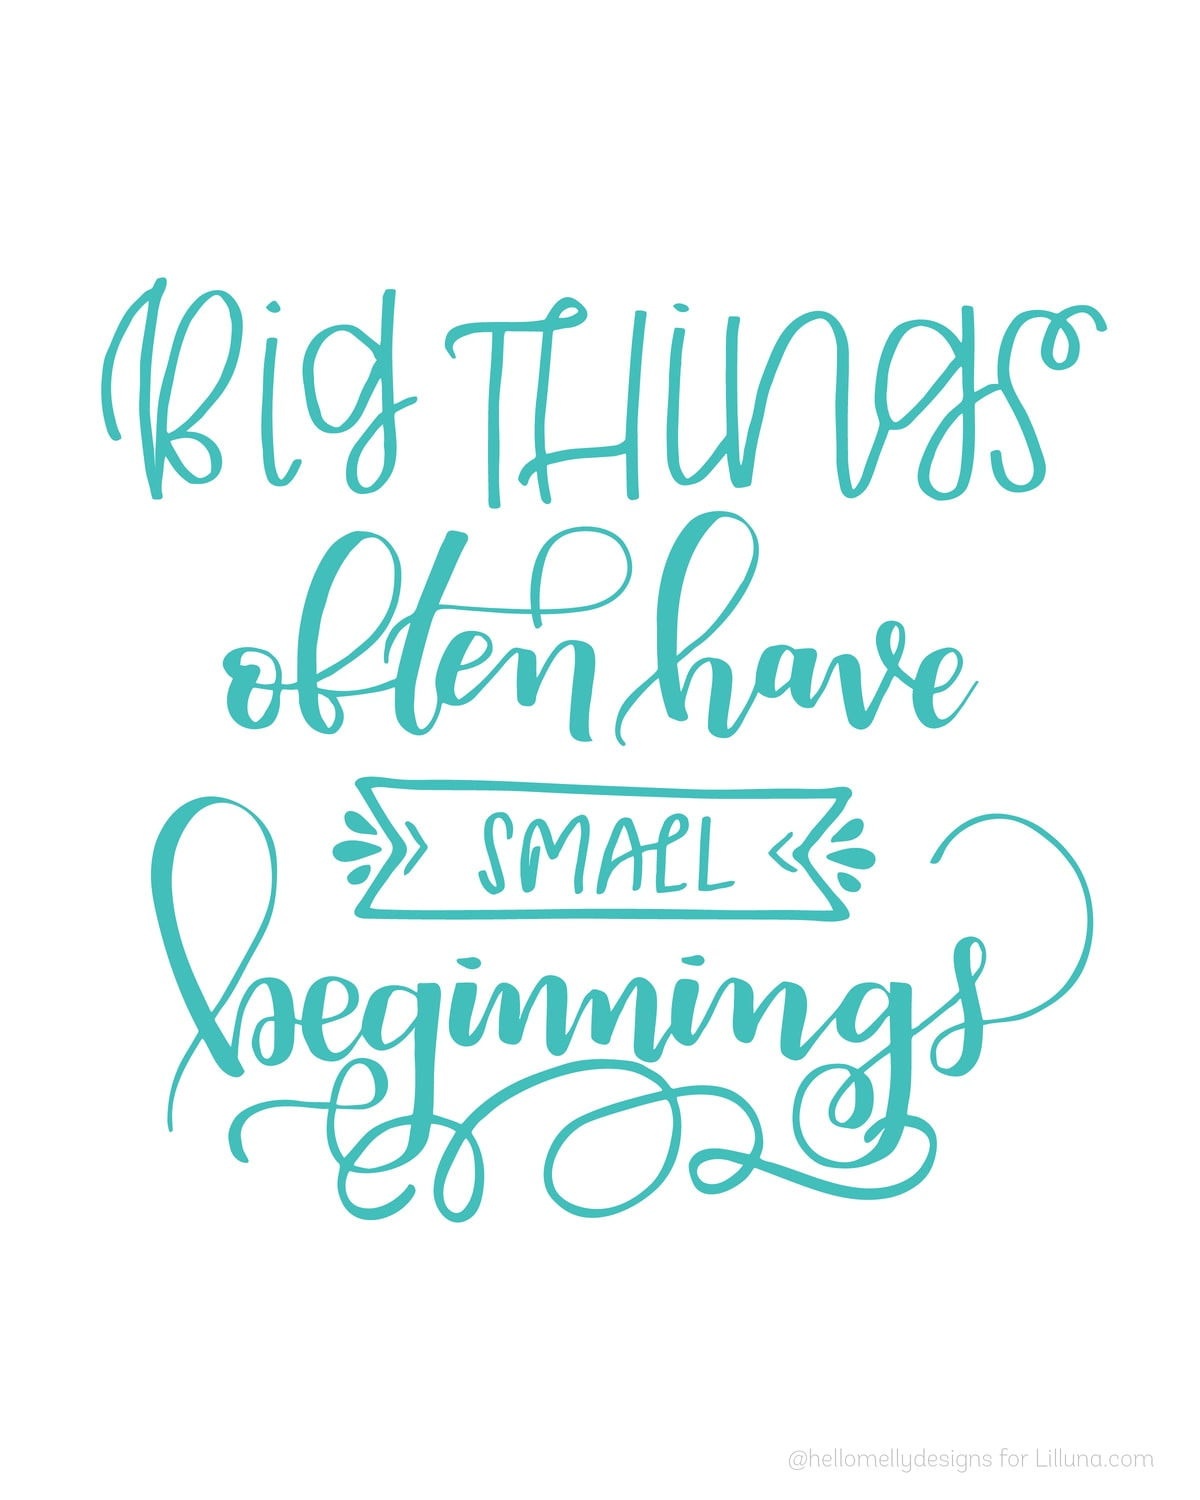 Big things often have small beginnings - LOVE this quote!! Get the free print on lilluna.com. Stick in a frame and use for cute decor!!